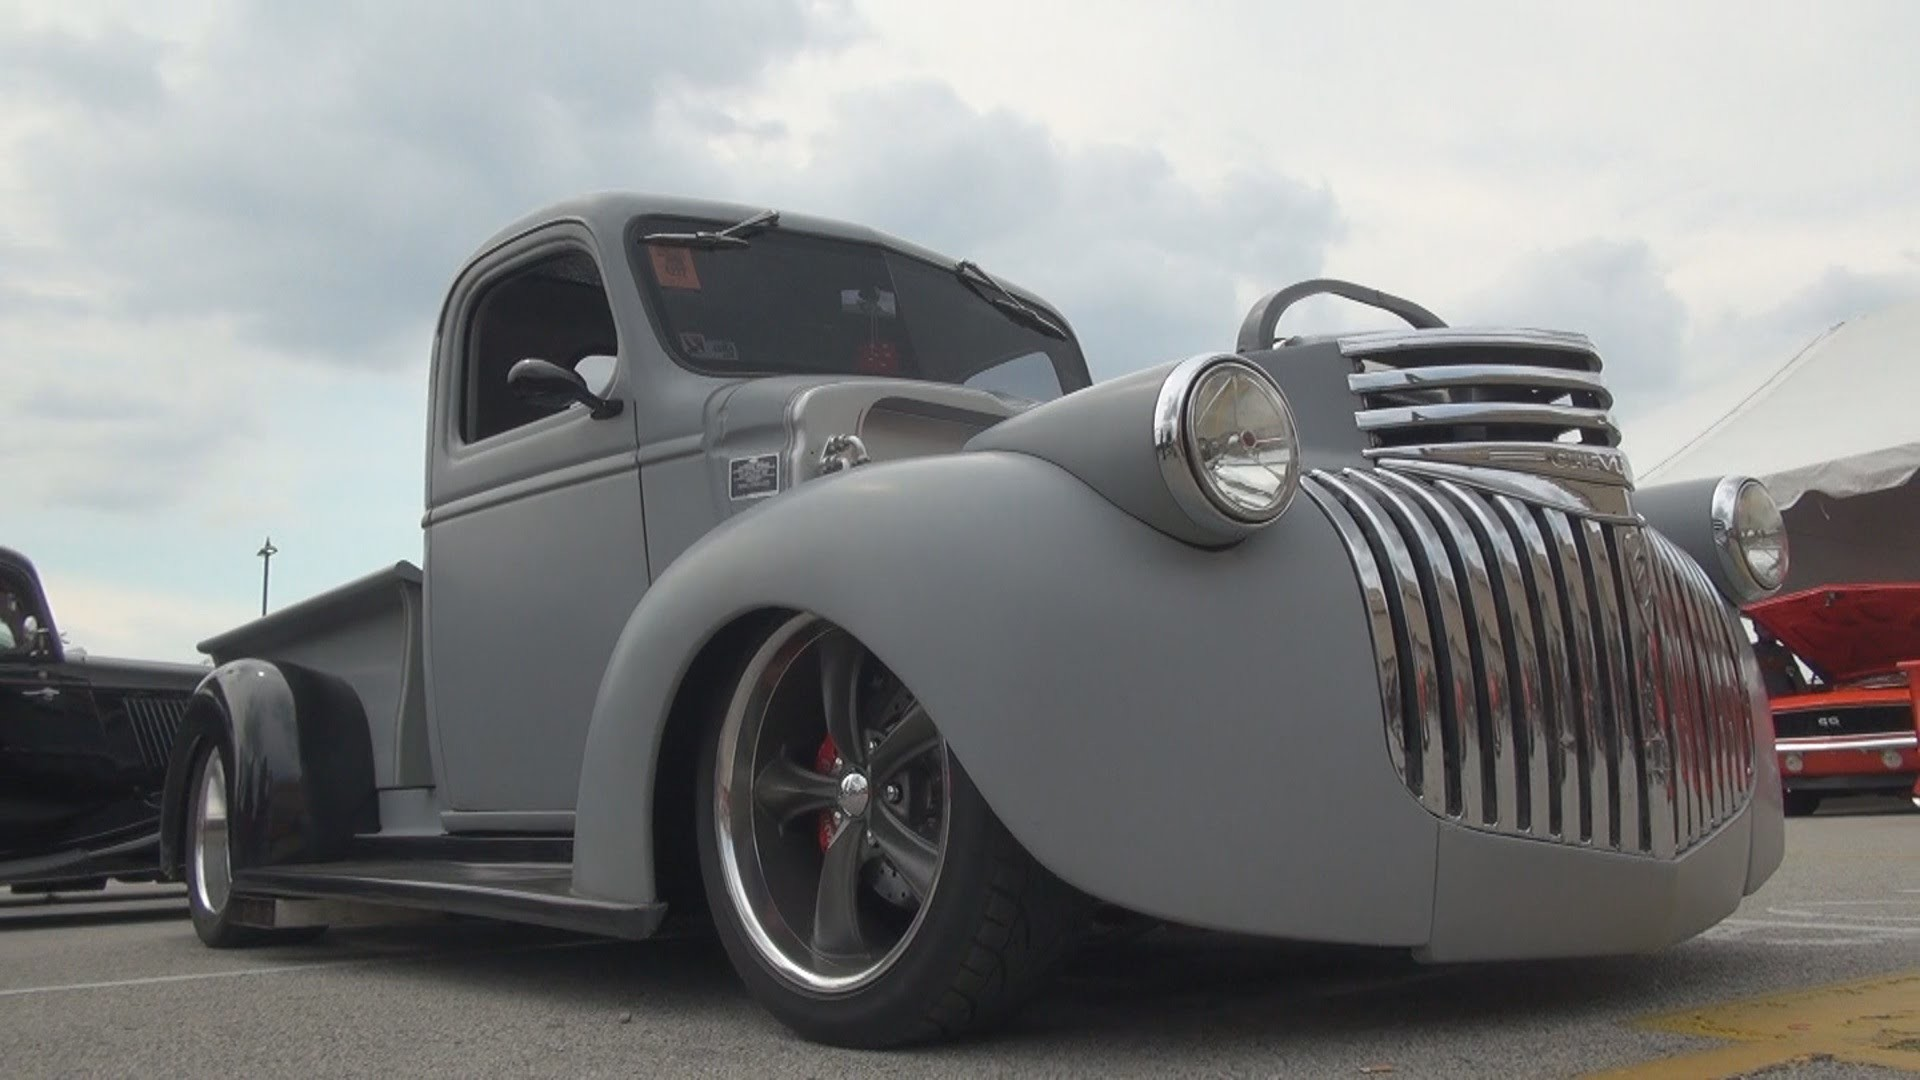 1920x1080 1946 Chevy Hot Rod/Rat Rod Pickup Truck - 2015 NSRA Nationals - YouTube